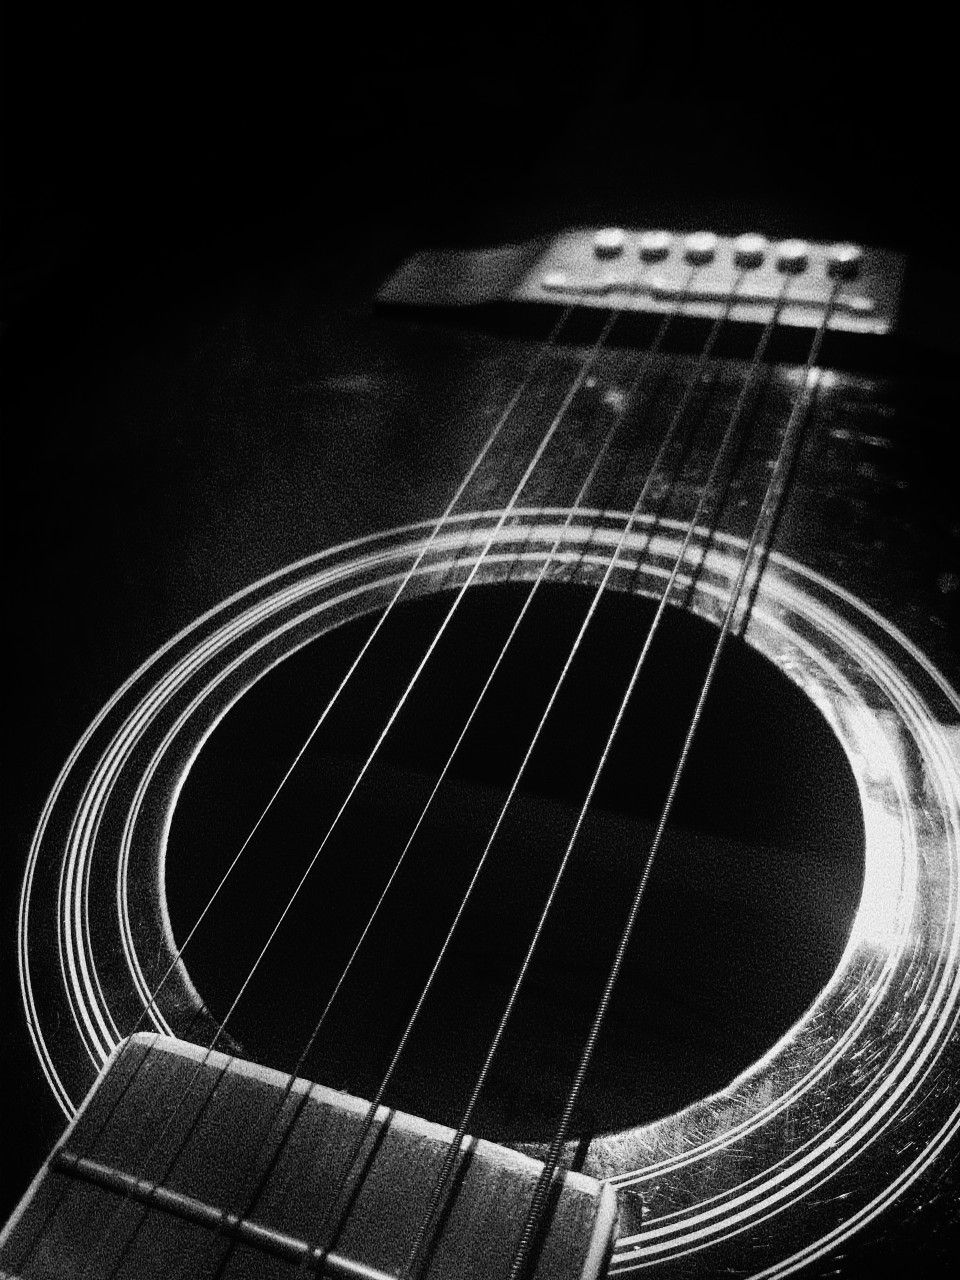 Black guitar in 2020 Projects to try, Projects, Black